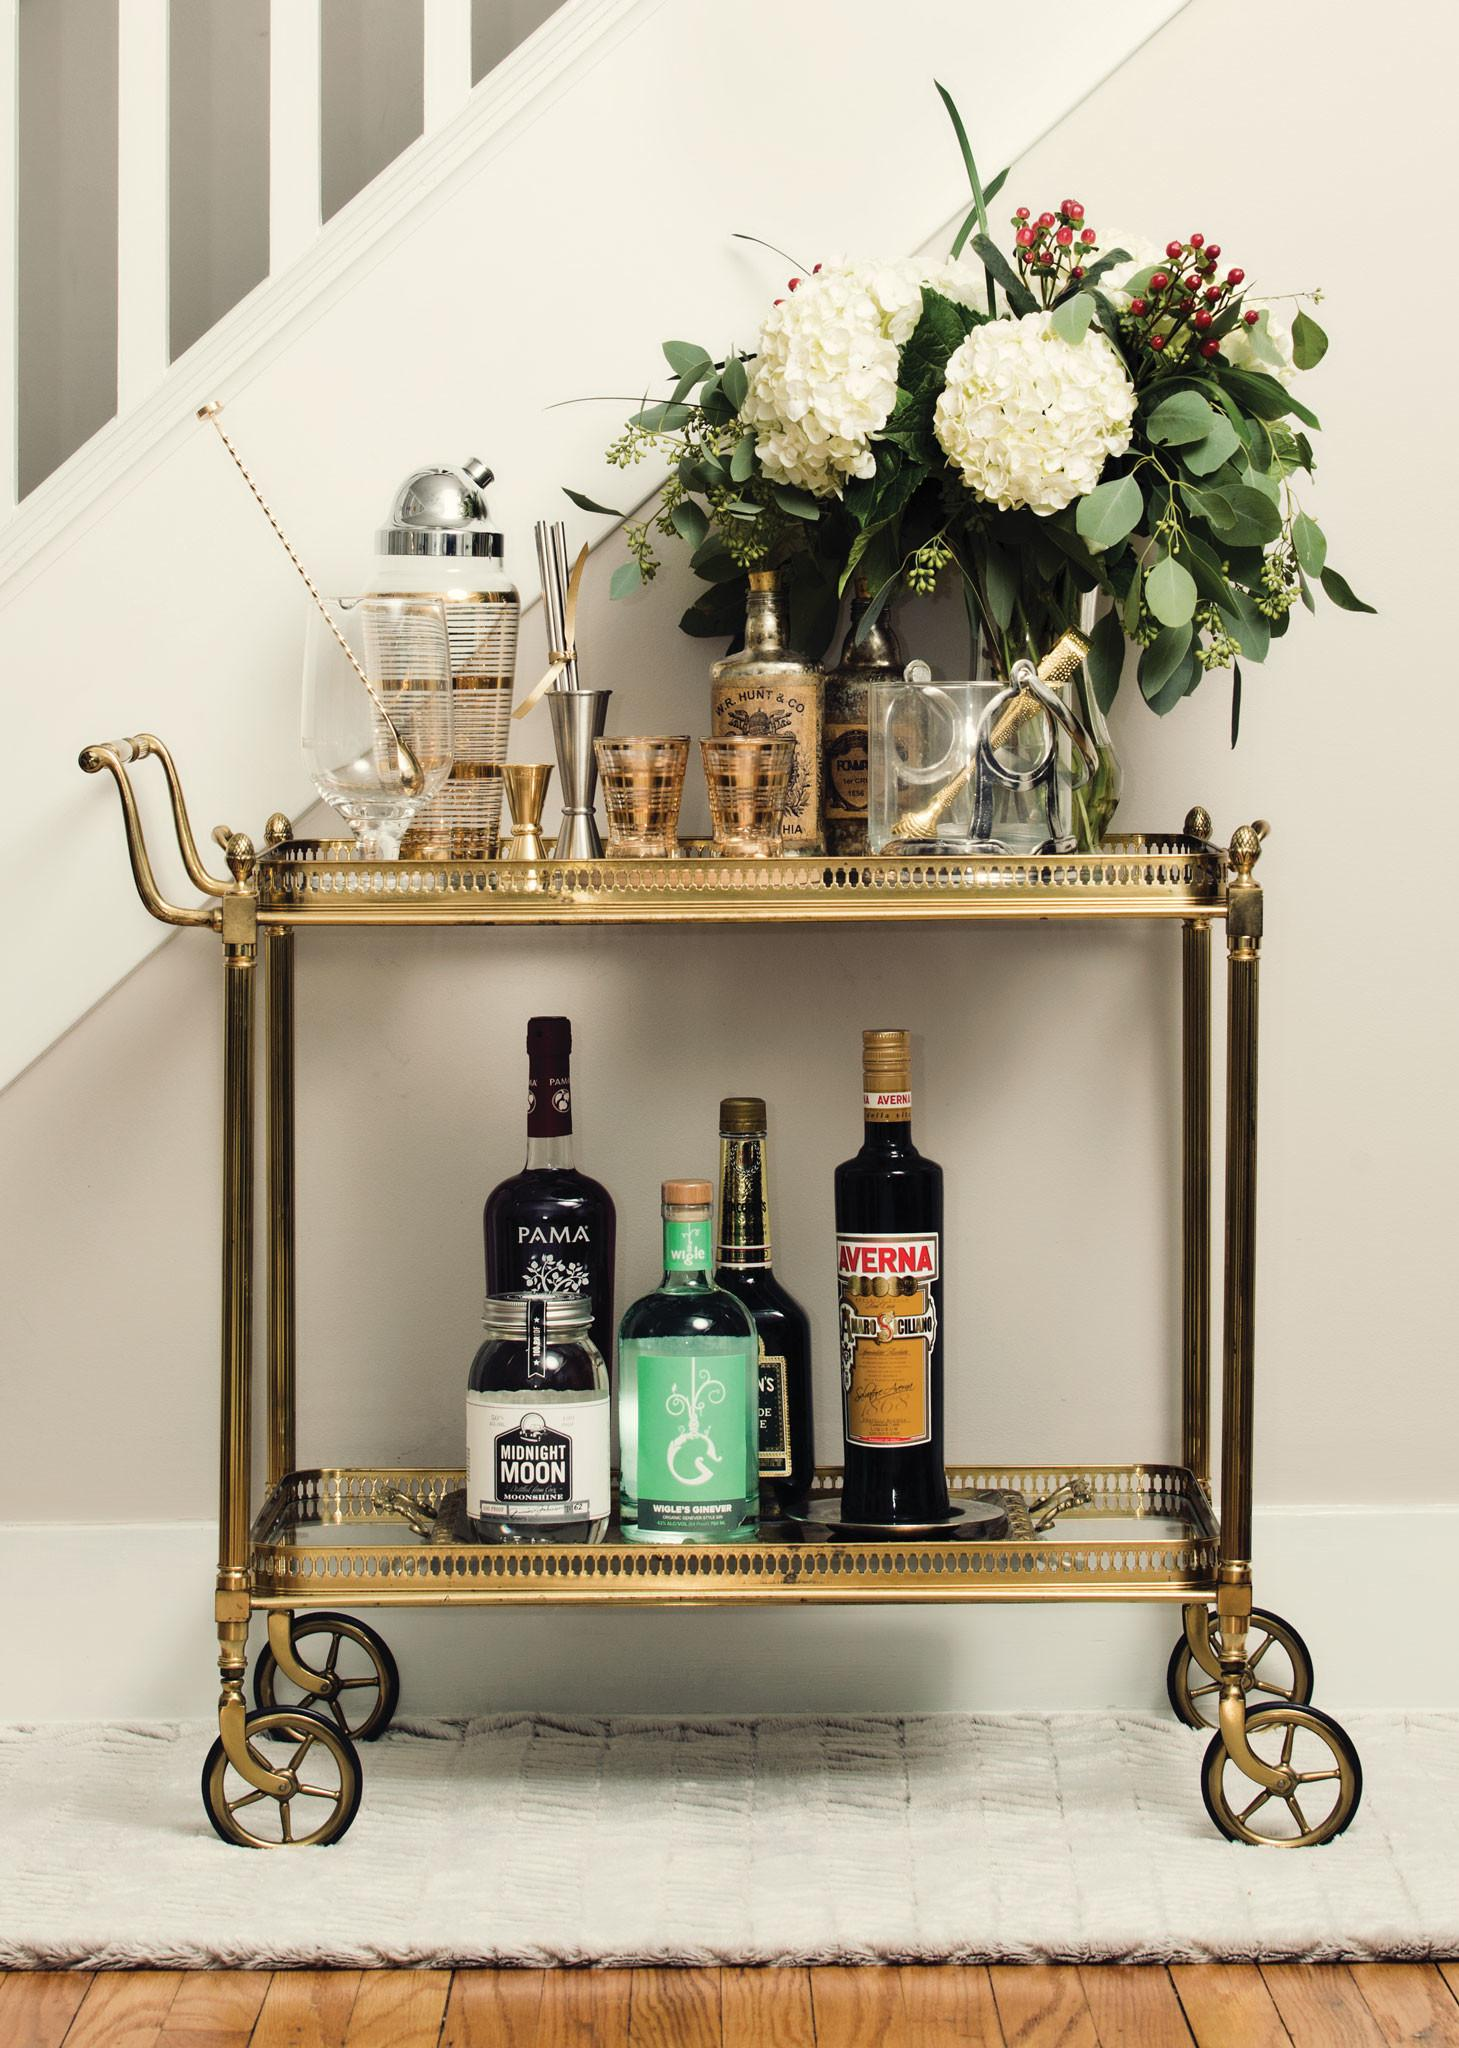 Stock Your Bar Cart Holidays Edible Allegheny